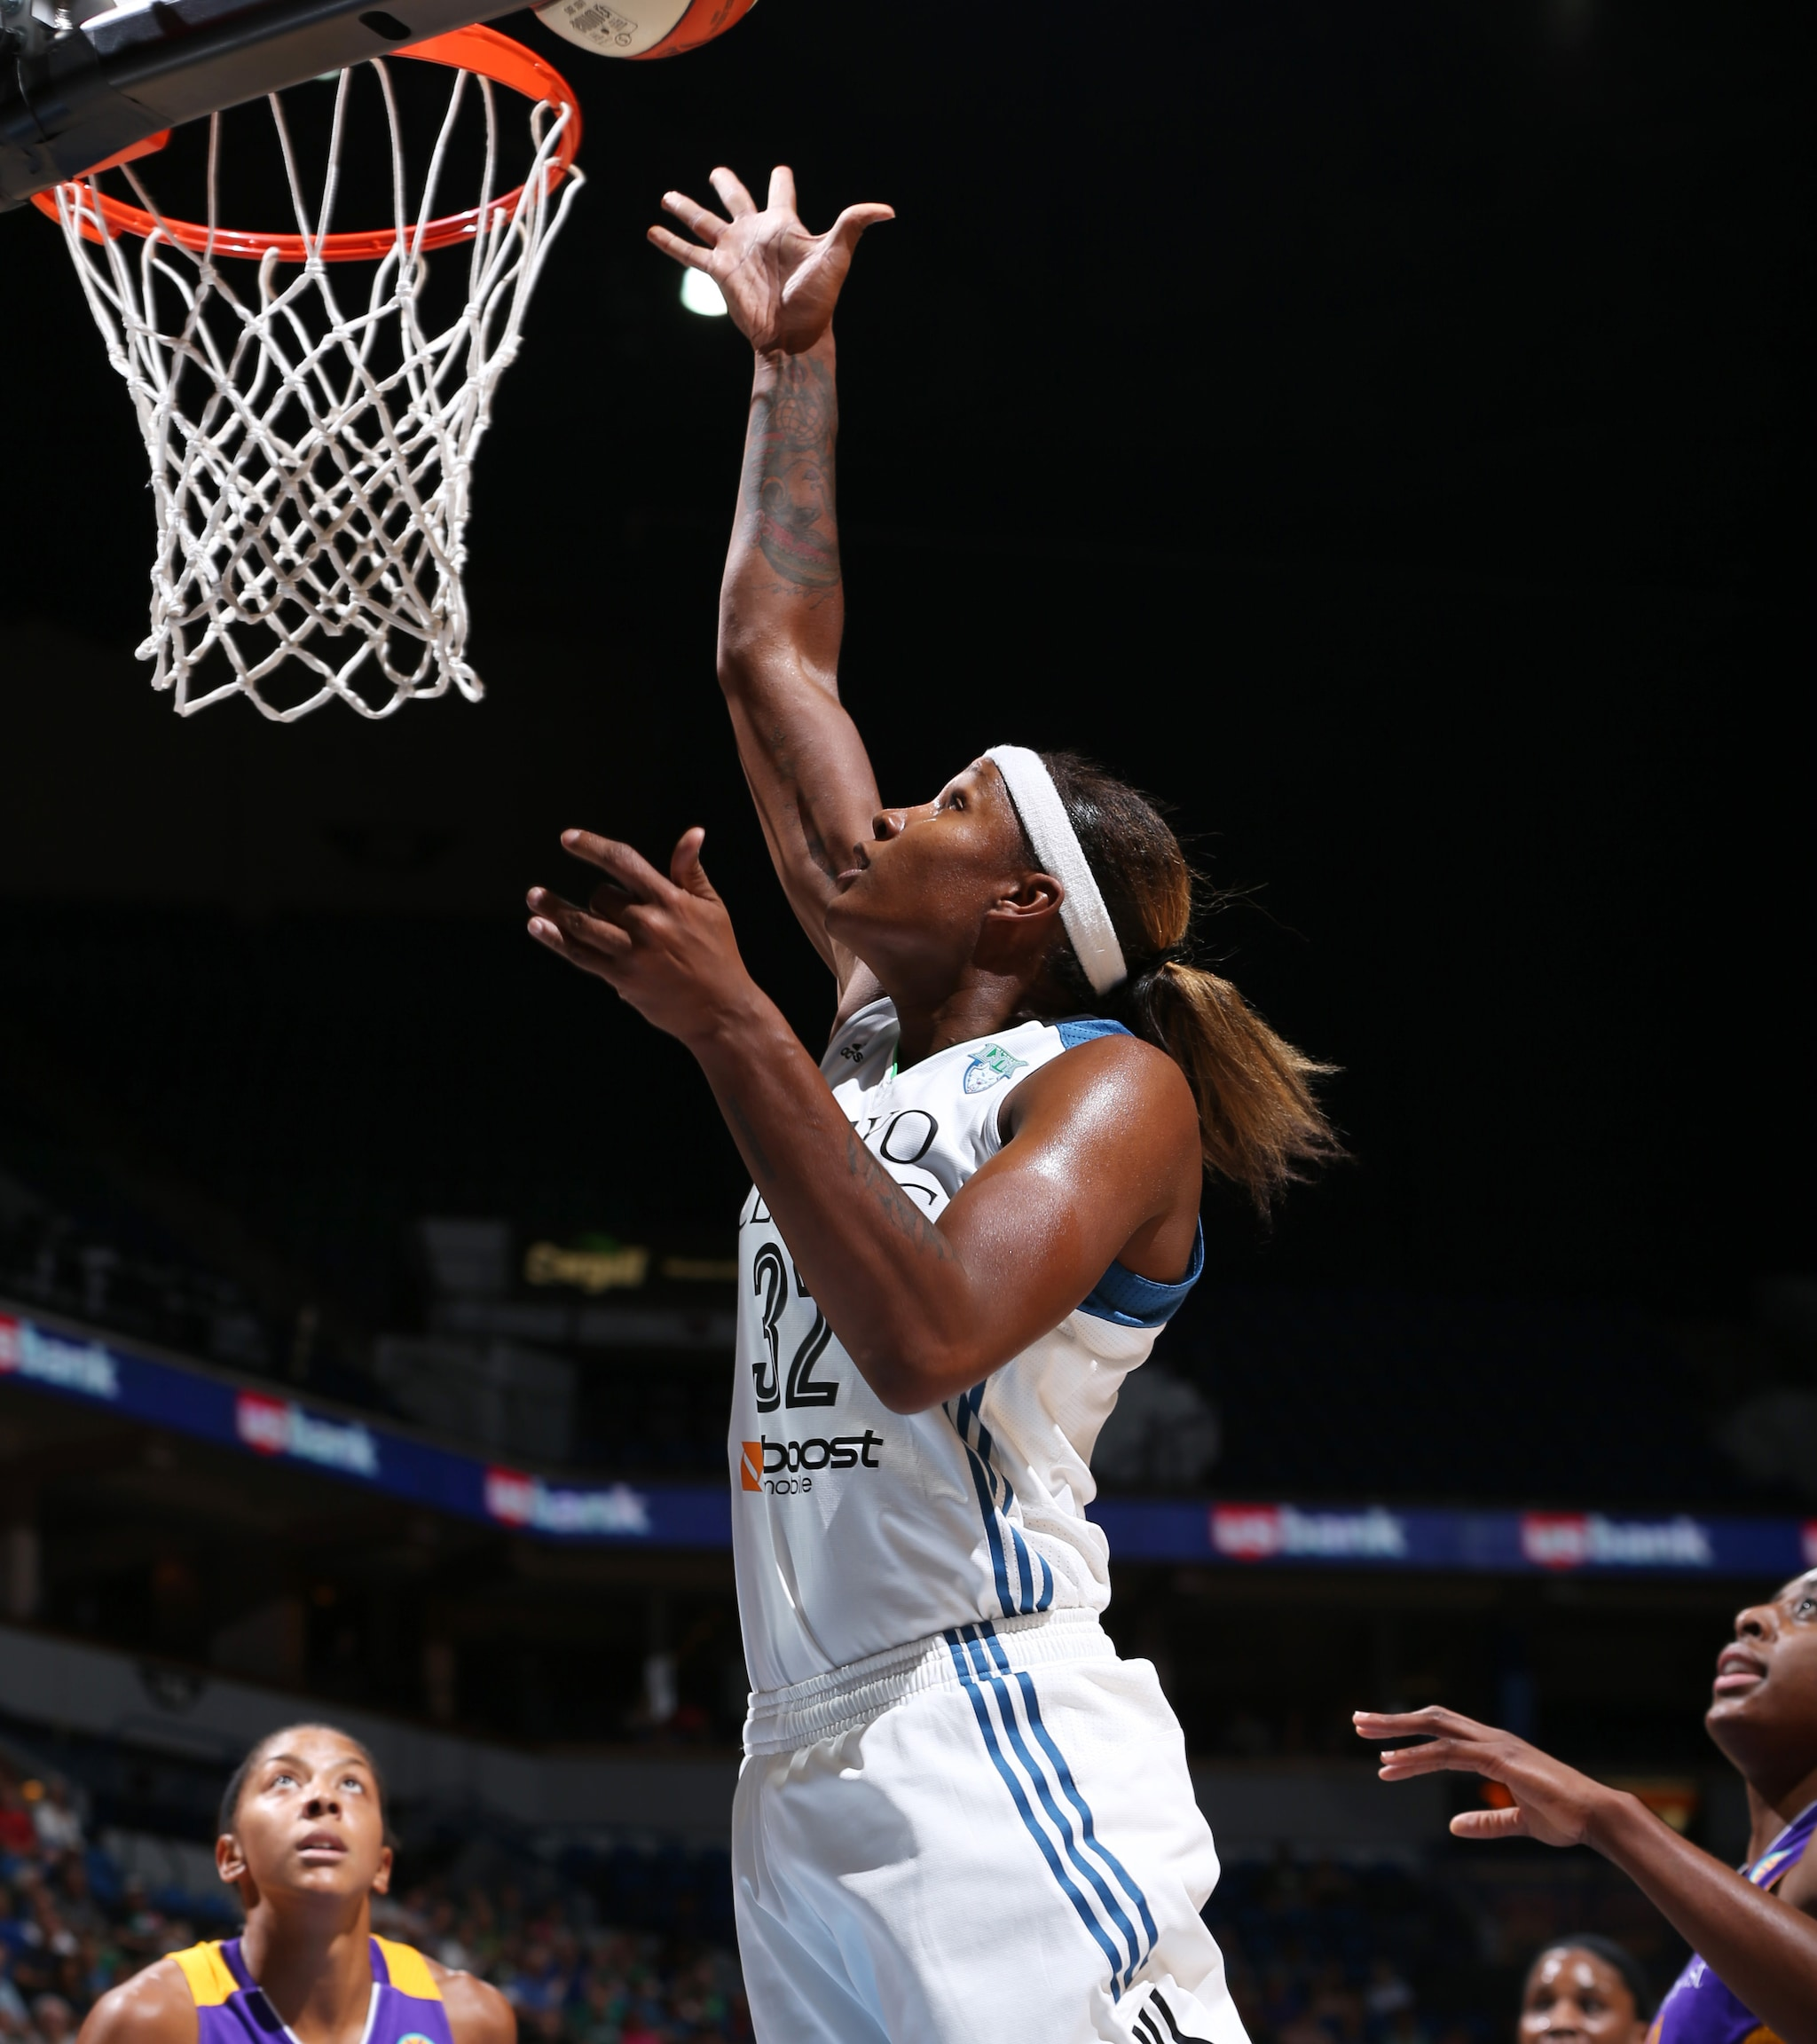 Lynx forward Rebekkah Brunson had a quiet night offensively, finishing with just three points and seven rebounds, but played well defensively keeping Sparks star Candace Parker in-check and snatching three steals.